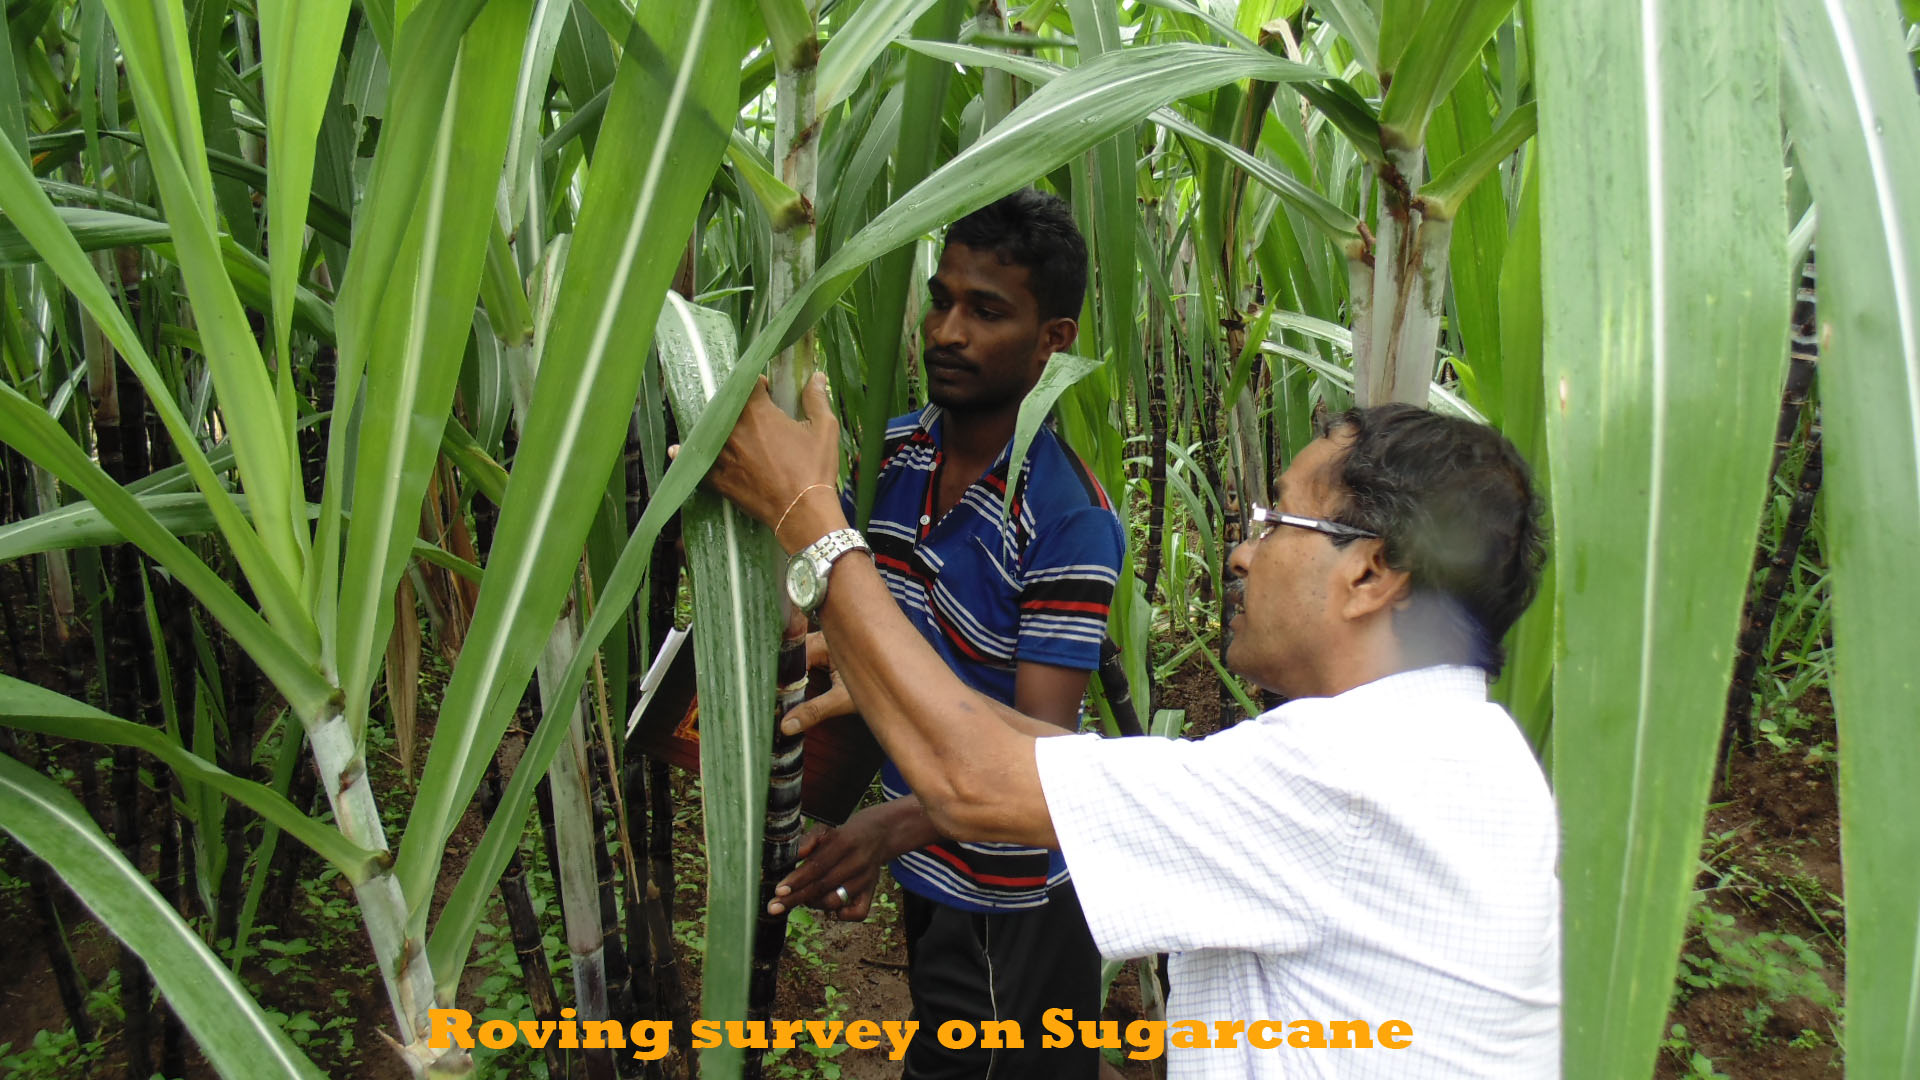 Roving survey on Sugarcane